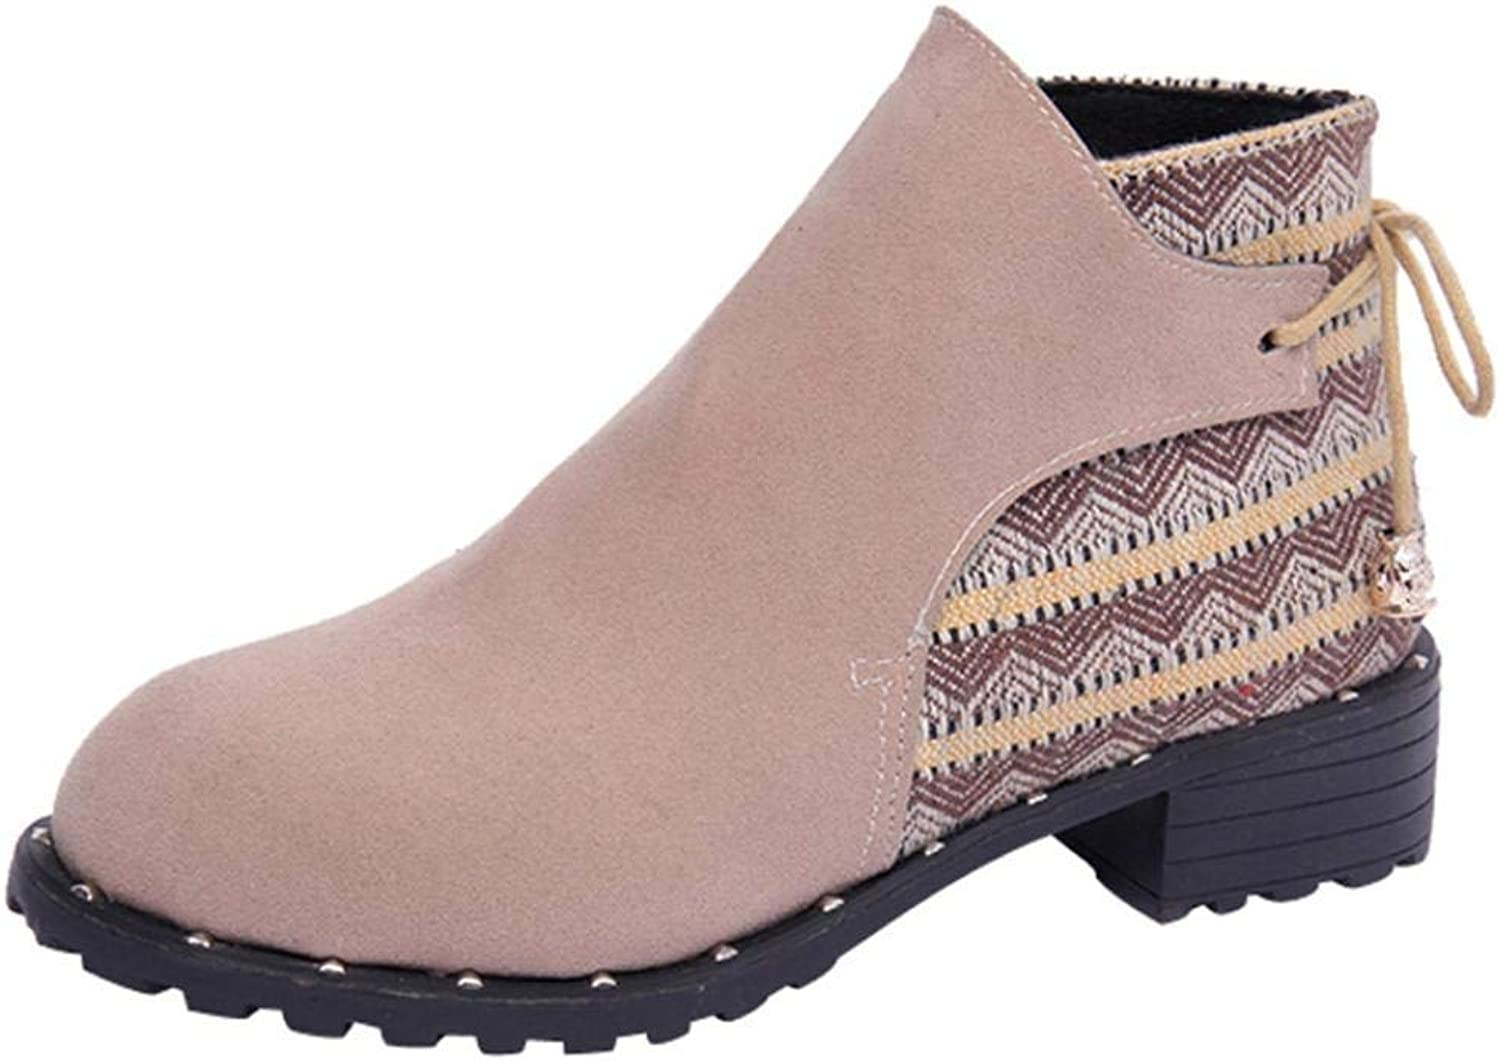 JaHGDU Women Boots Wedges Low Middle Tube Casual shoes Martin Boots Fashion Leisure Elegant Cosy Wild Tight Super Quality Pink Brown for Womens